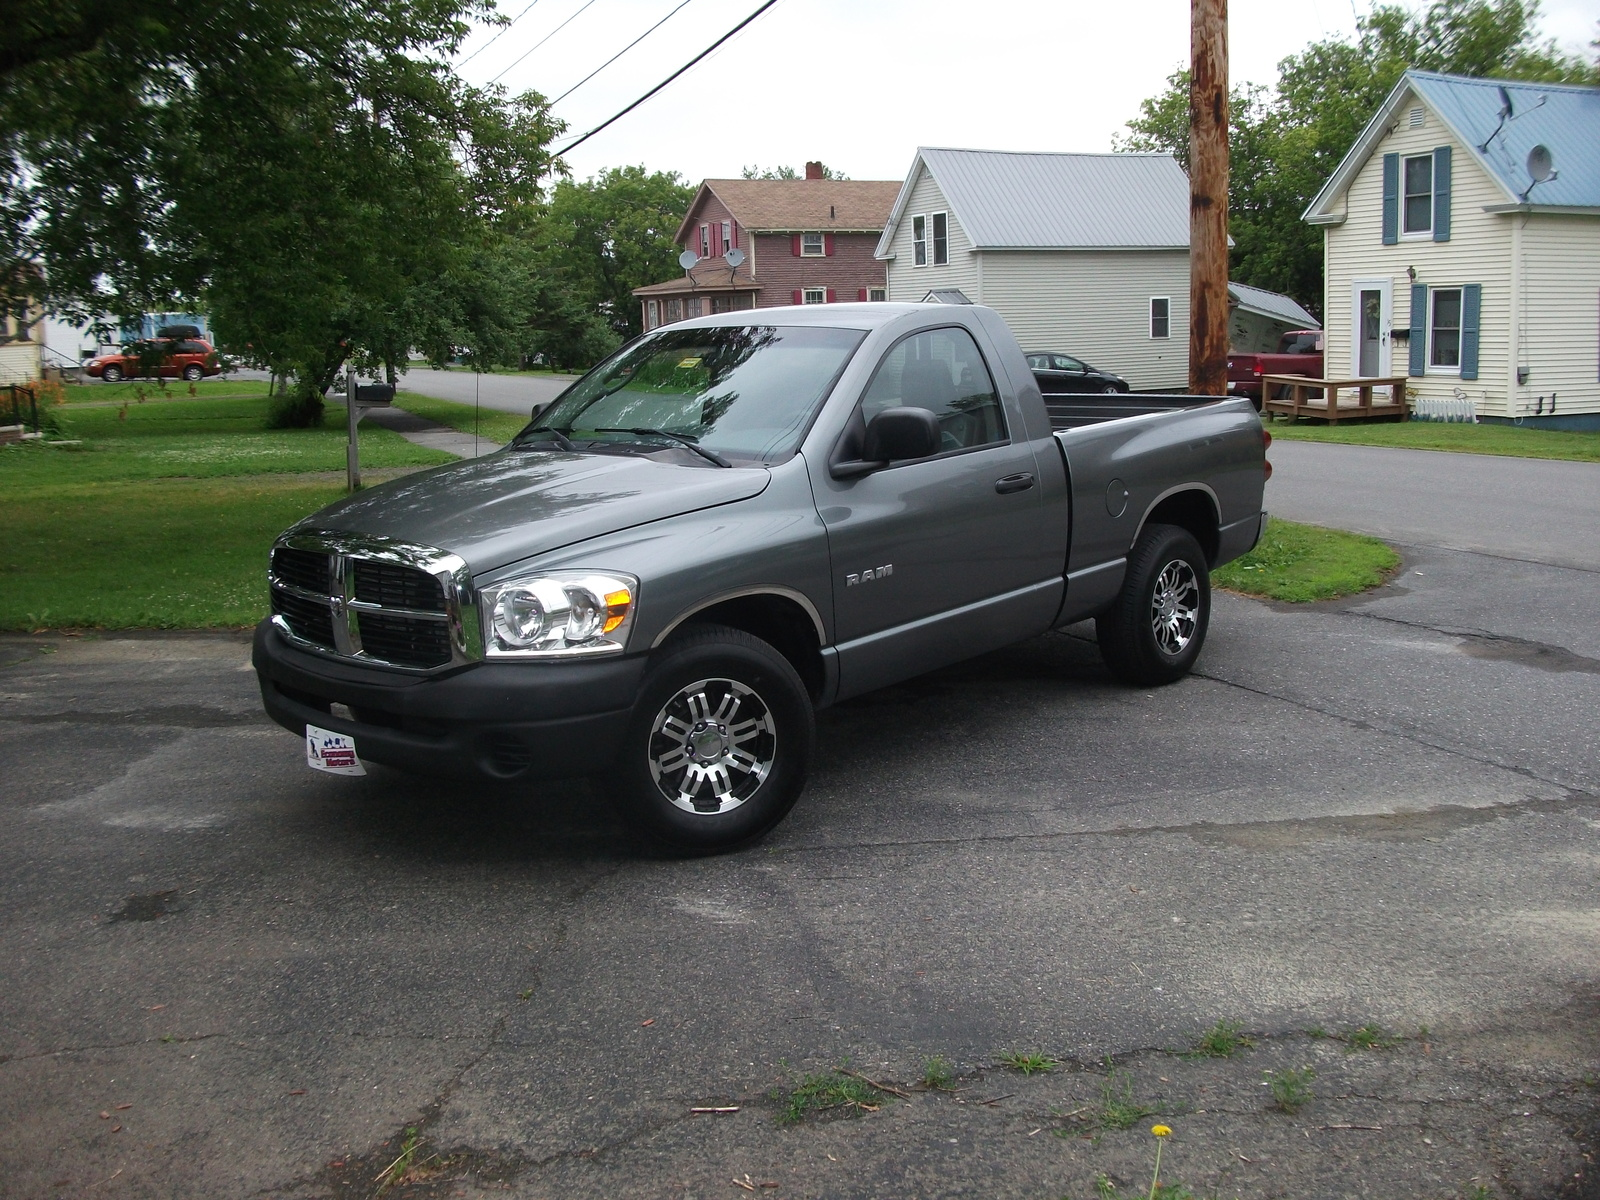 Dodge Ram 1500 Questions - My check engine light comes on